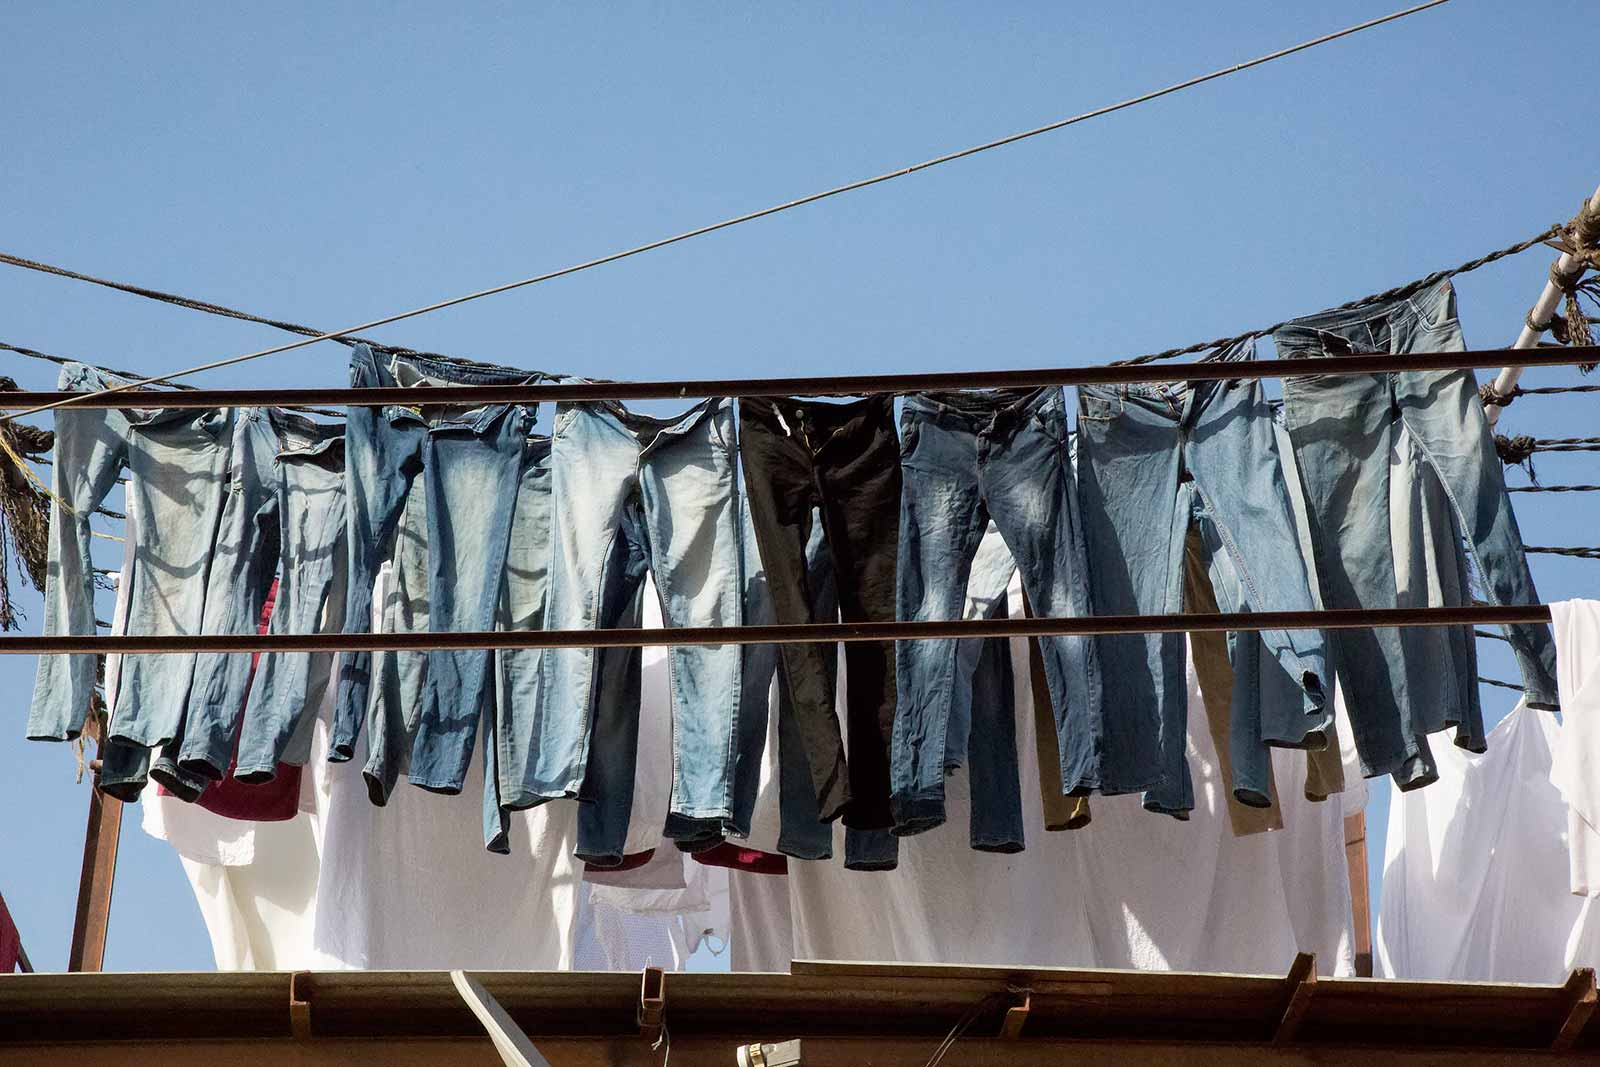 You will find every piece of clothing there is at Mahalakshmi Dhobi Ghat - from socks to linen.